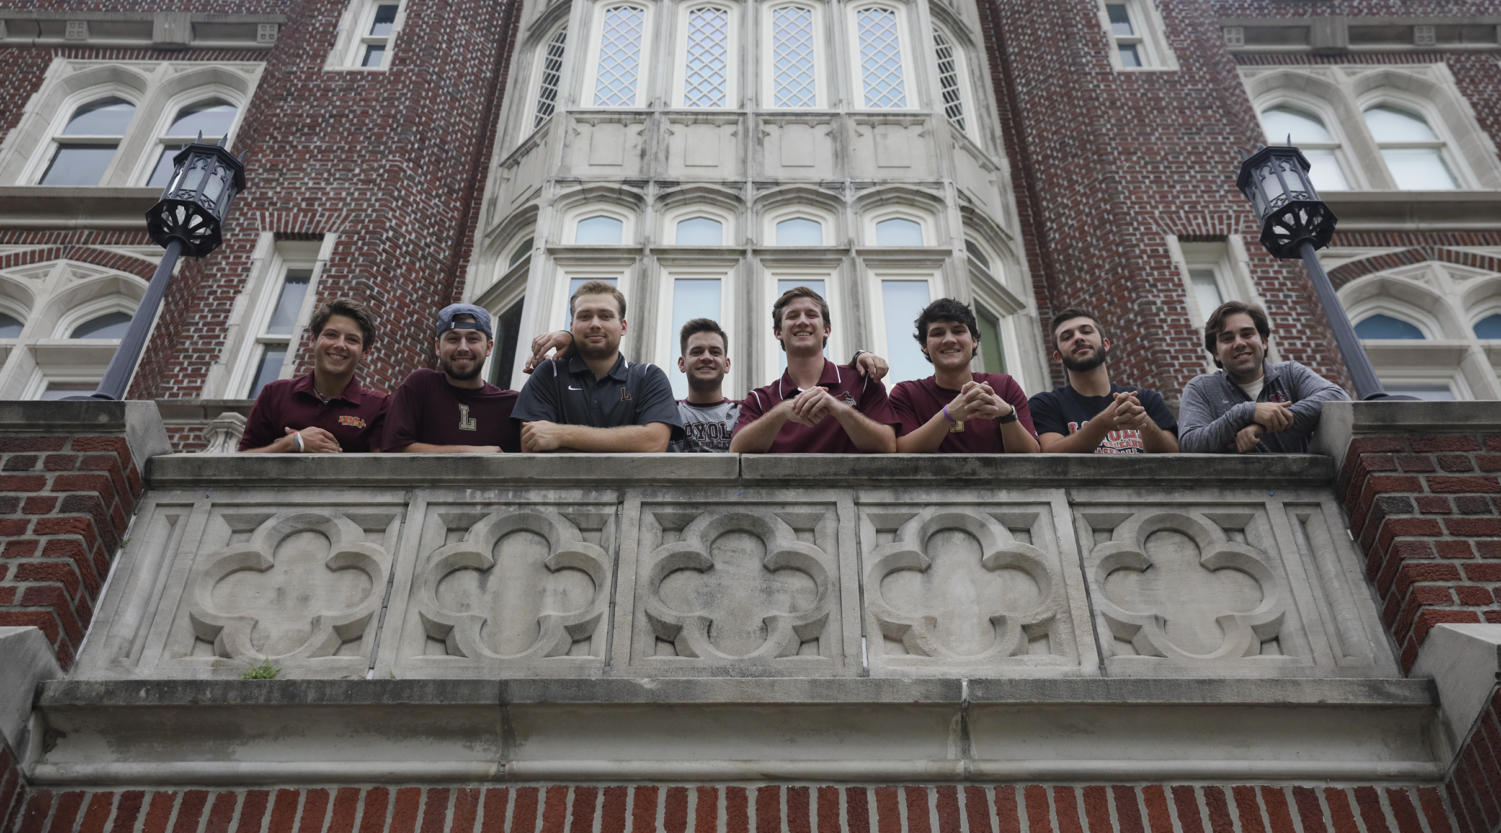 Charlie Seiter, fourth from the right, poses alongside fellow members of the Catholic Men's Fellowship. Seiter is also involved in the Christian Life Communities, a student organization on Loyola that meets to discuss faith and life issues.